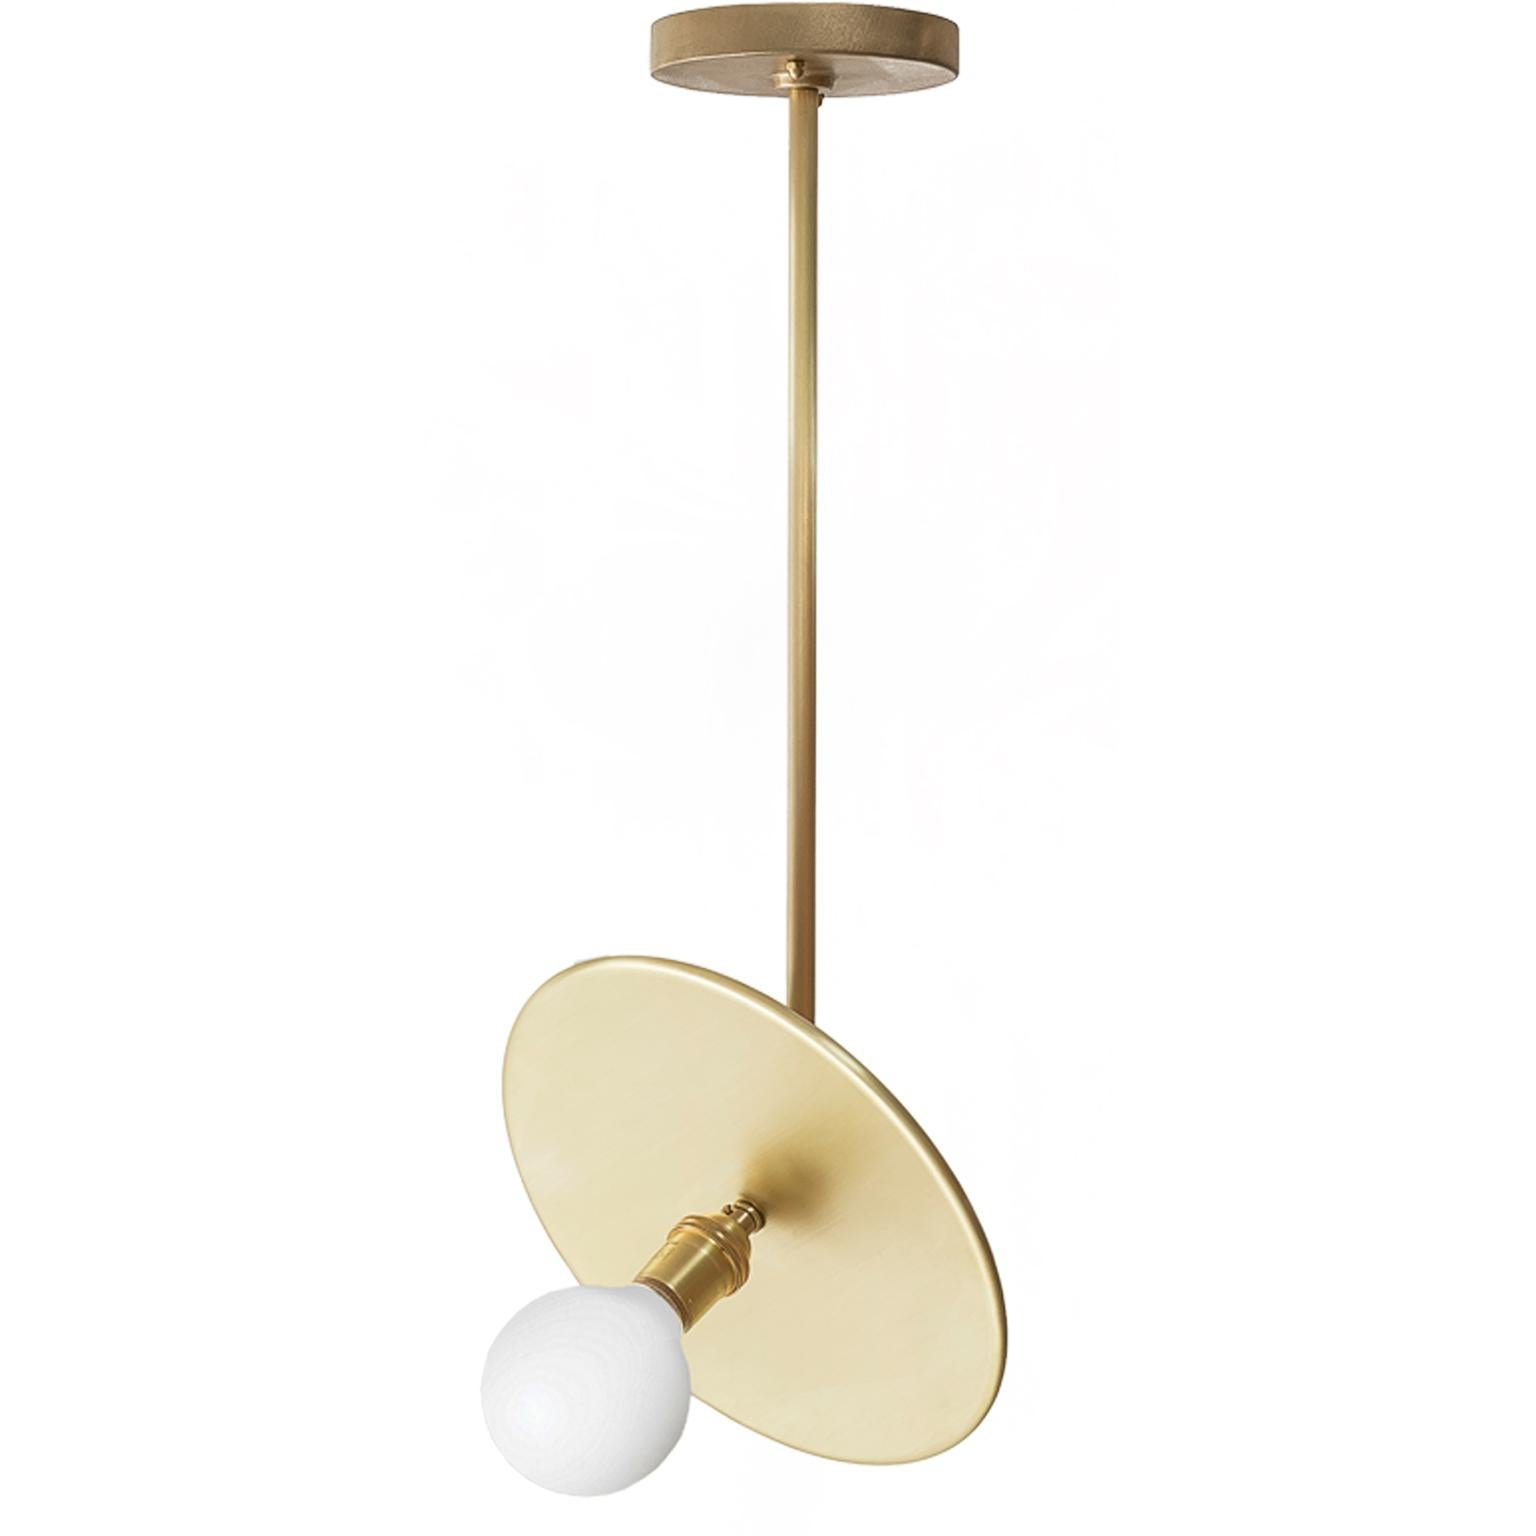 Workstead Brass Pendant with Adjustable Reflector